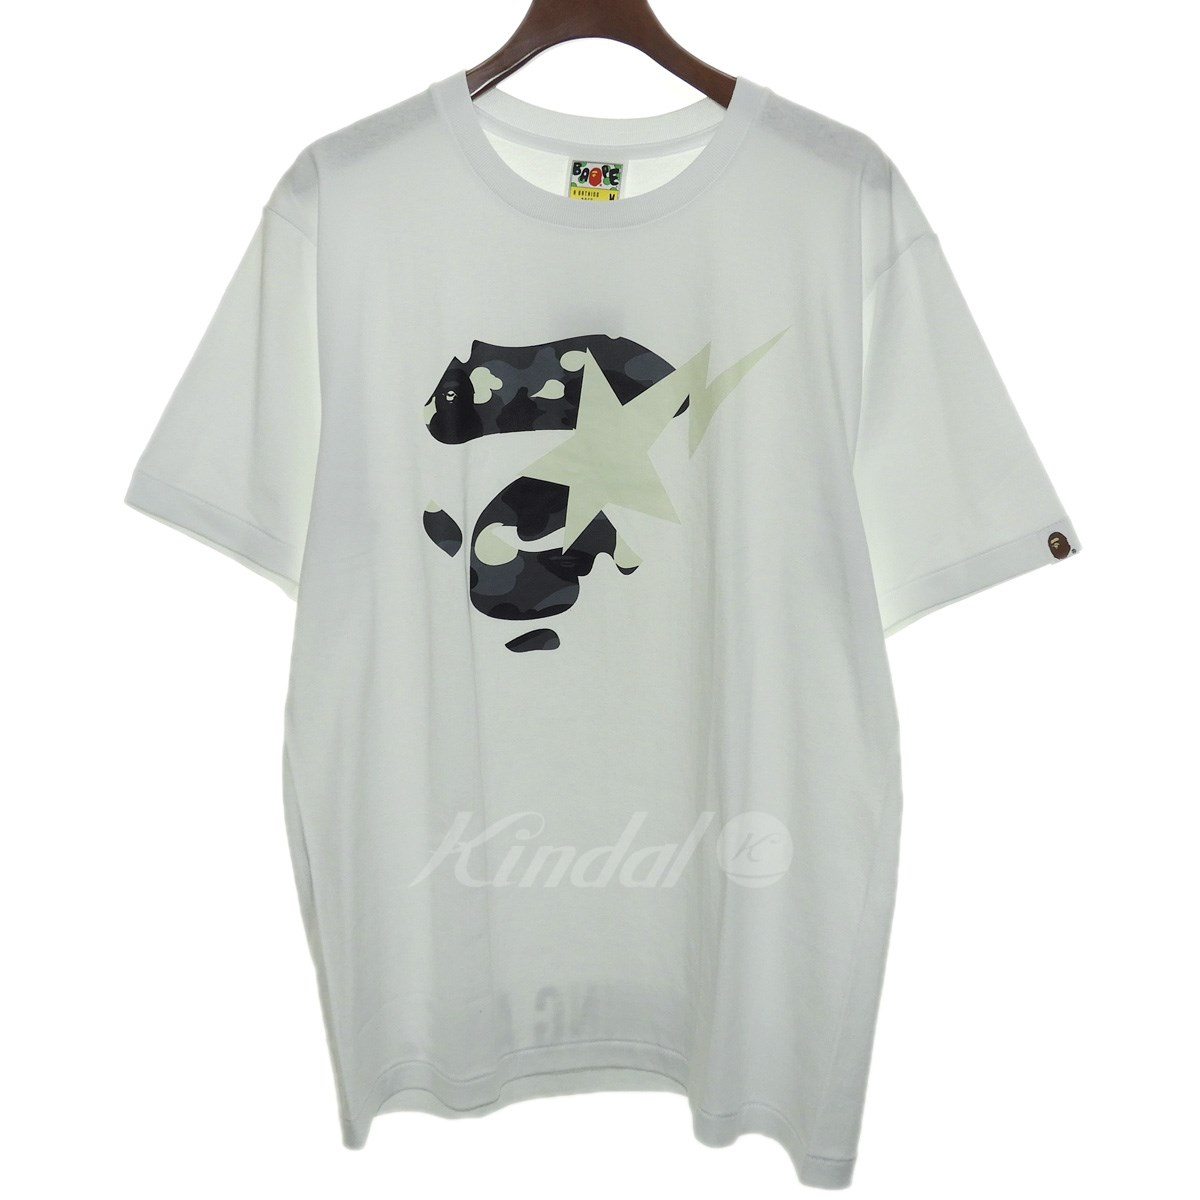 【中古】A BATHING APE 18AW「CITY CAMO APEFACE ON BAPESTA TEE」エイプフェイスTシャツ 【送料無料】 【114805】 【KIND1550】